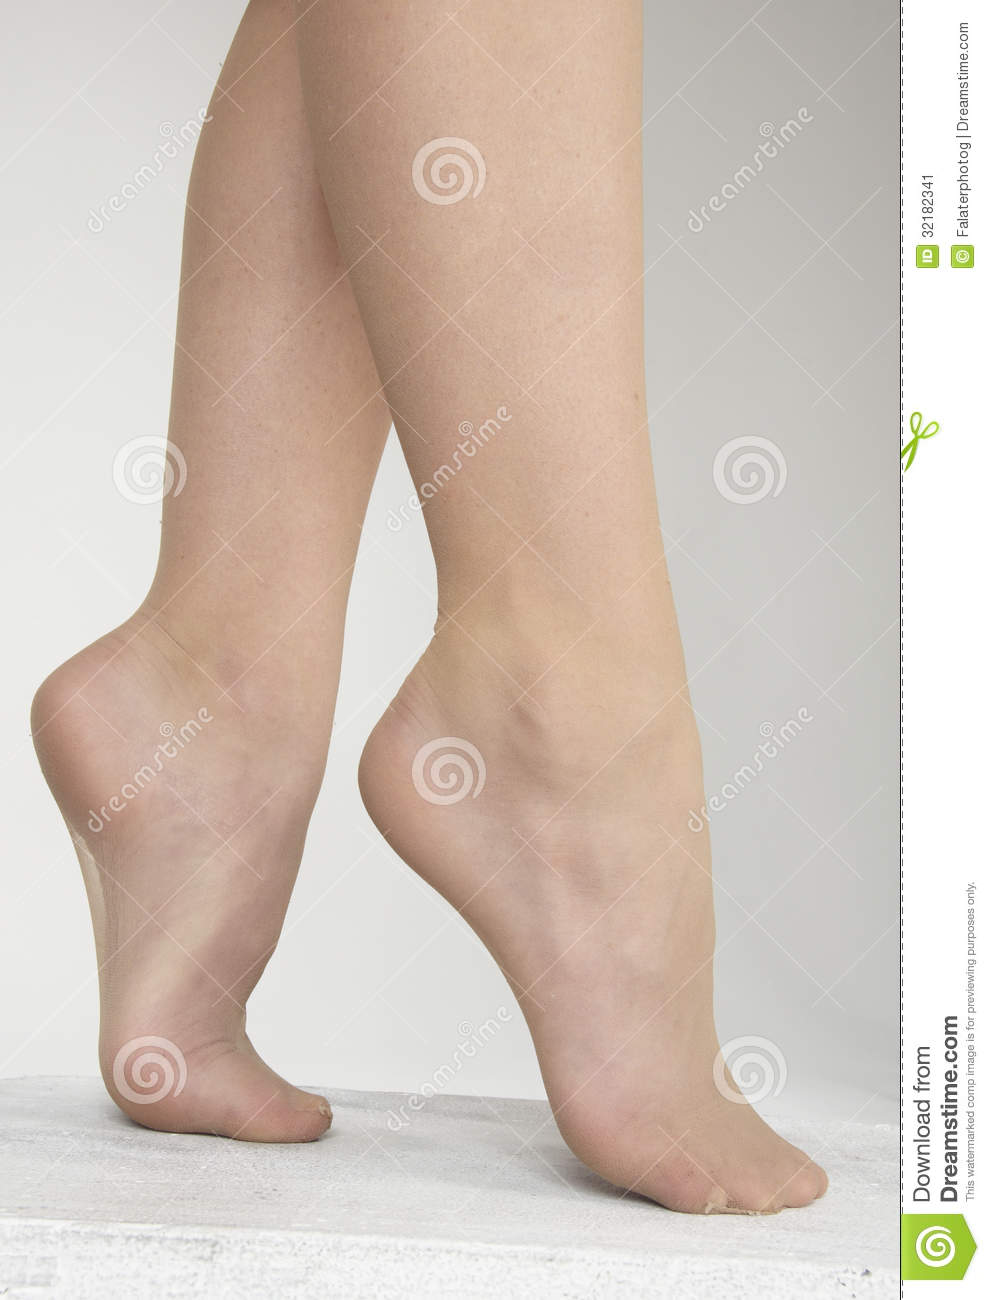 Close Up of woman's feet wearing sheer pantyhose against a white ...